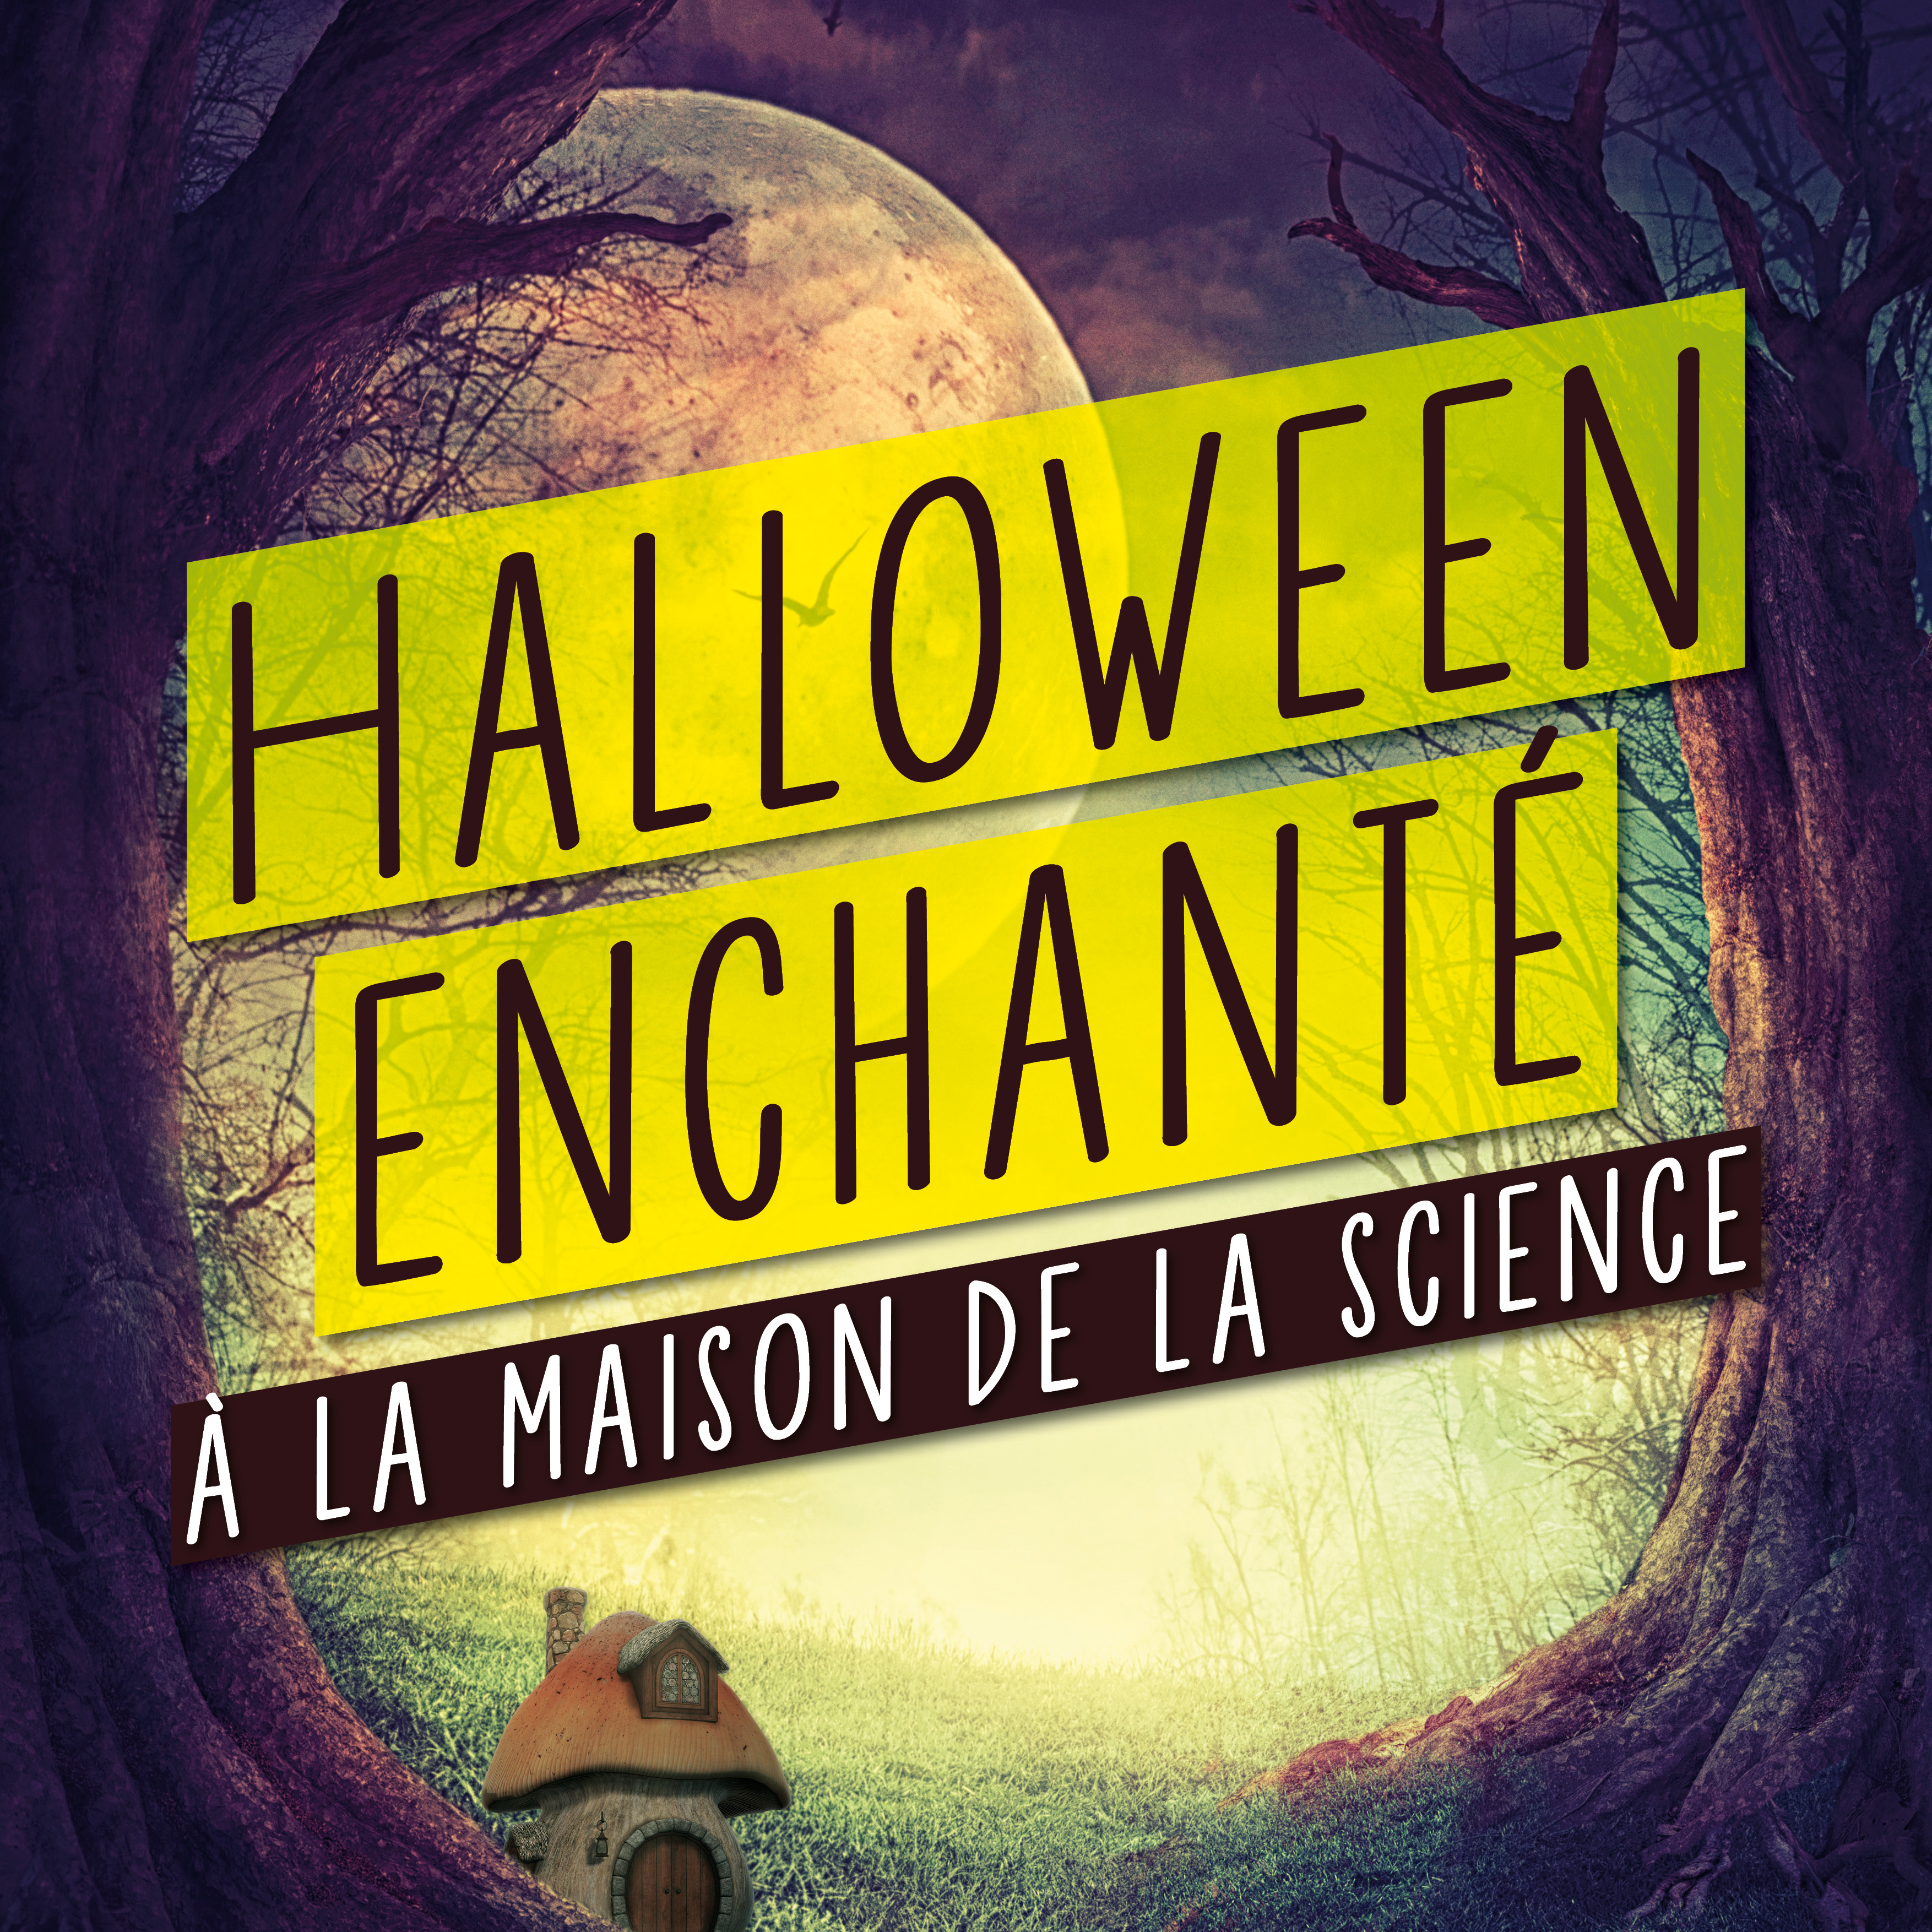 Halloween enchanté à la Maison de la Science